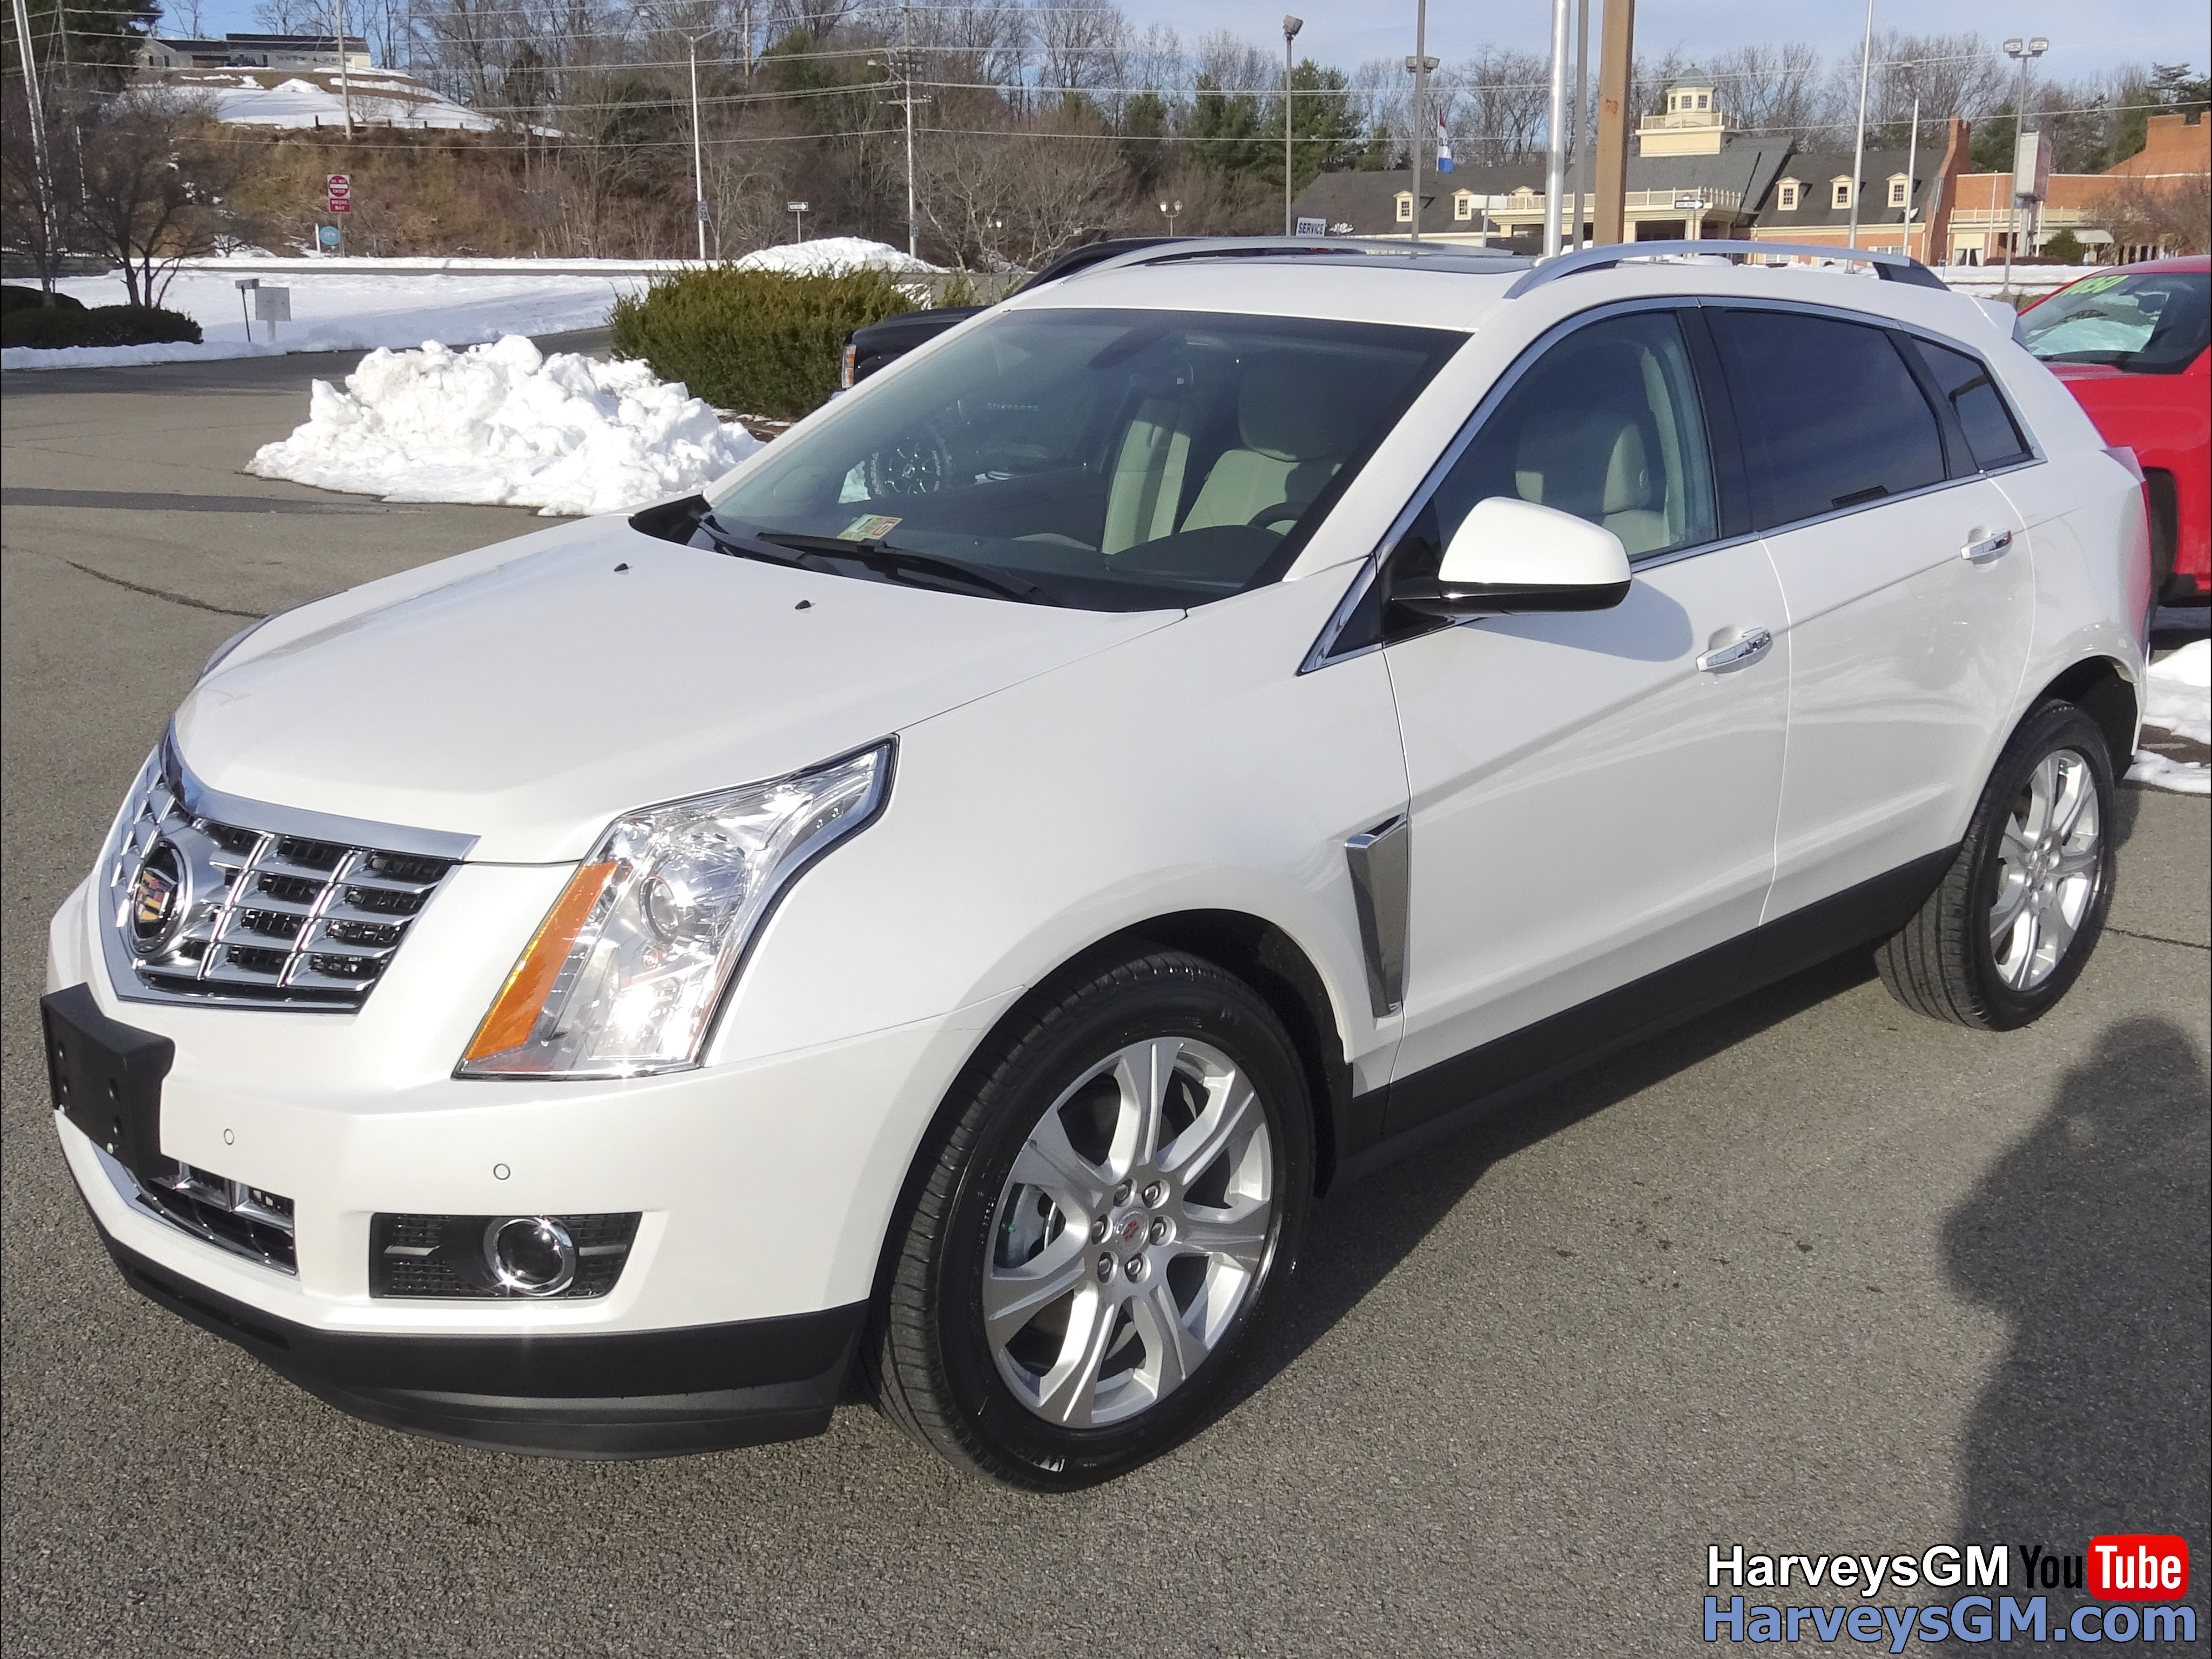 swift she style taylor diego srx buys gaslamp cars san crossover a the cadillac with arriving in to